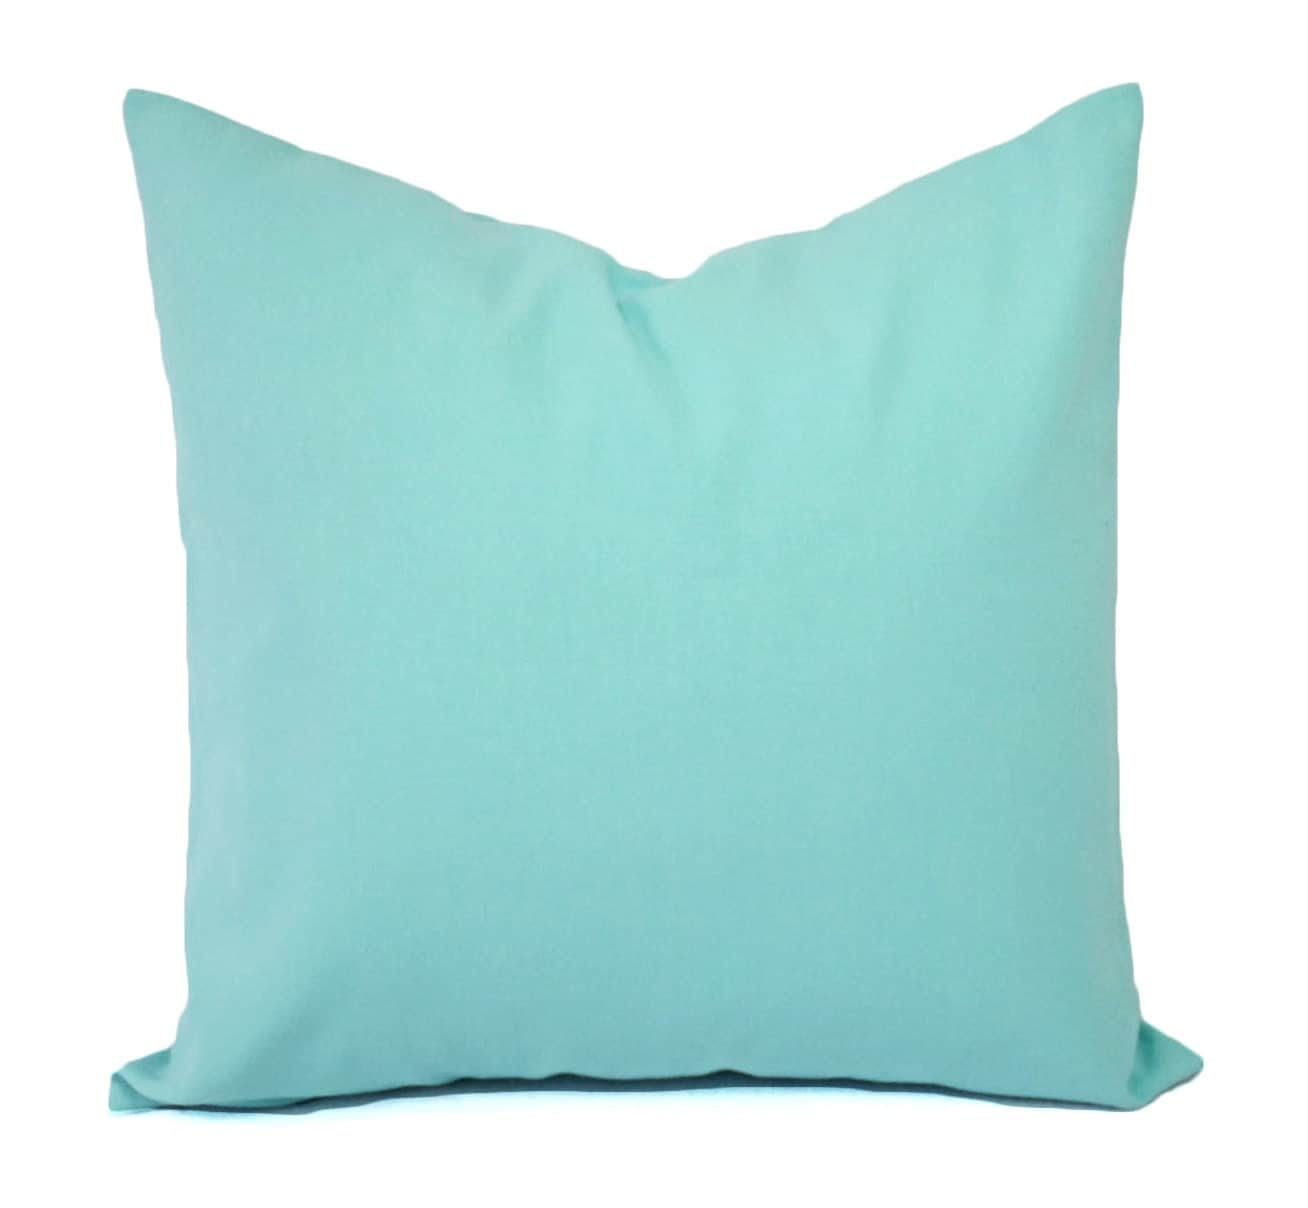 Throw Pillows Aqua Blue : Two Aqua Pillow Covers Solid Teal Throw Pillows Aqua Couch